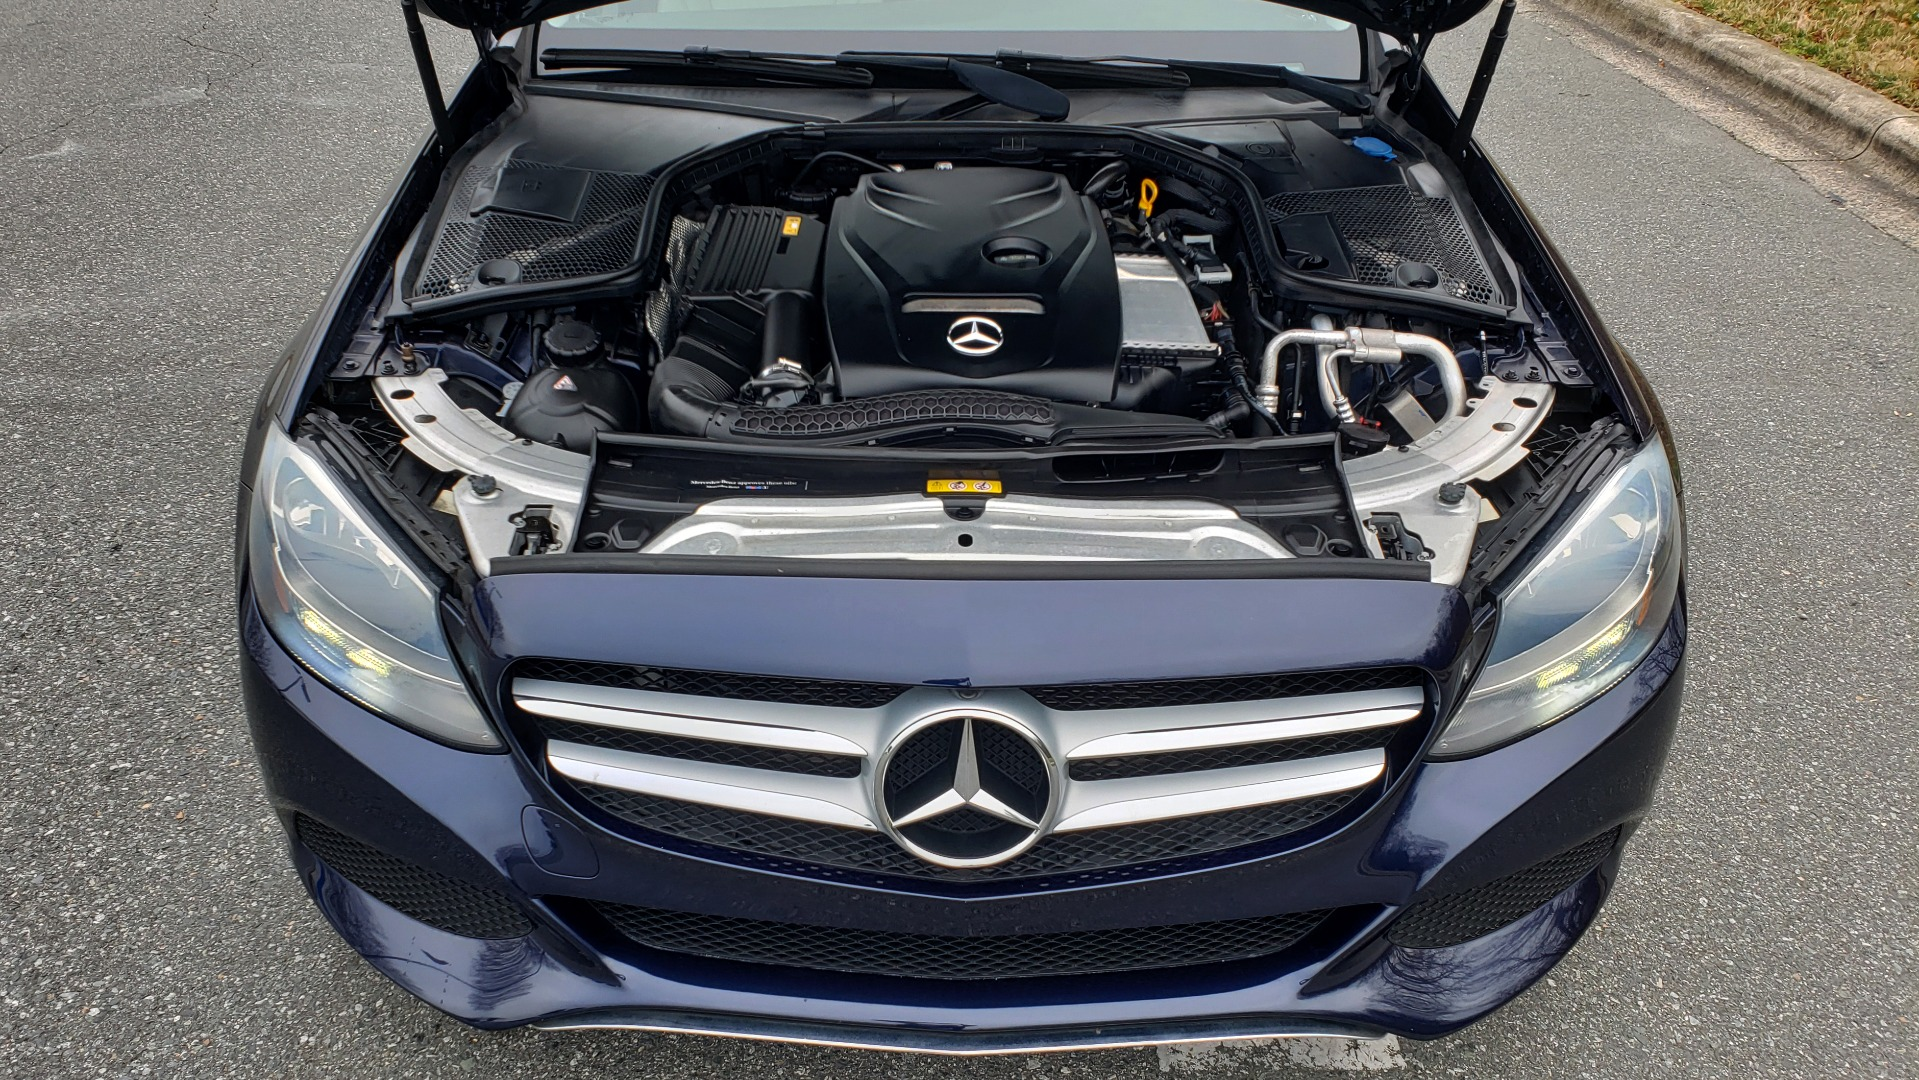 Used 2016 Mercedes-Benz C-CLASS C 300 / PREM PKG / PANO-ROOF / BSA / HTD STS / REARVIEW for sale Sold at Formula Imports in Charlotte NC 28227 10